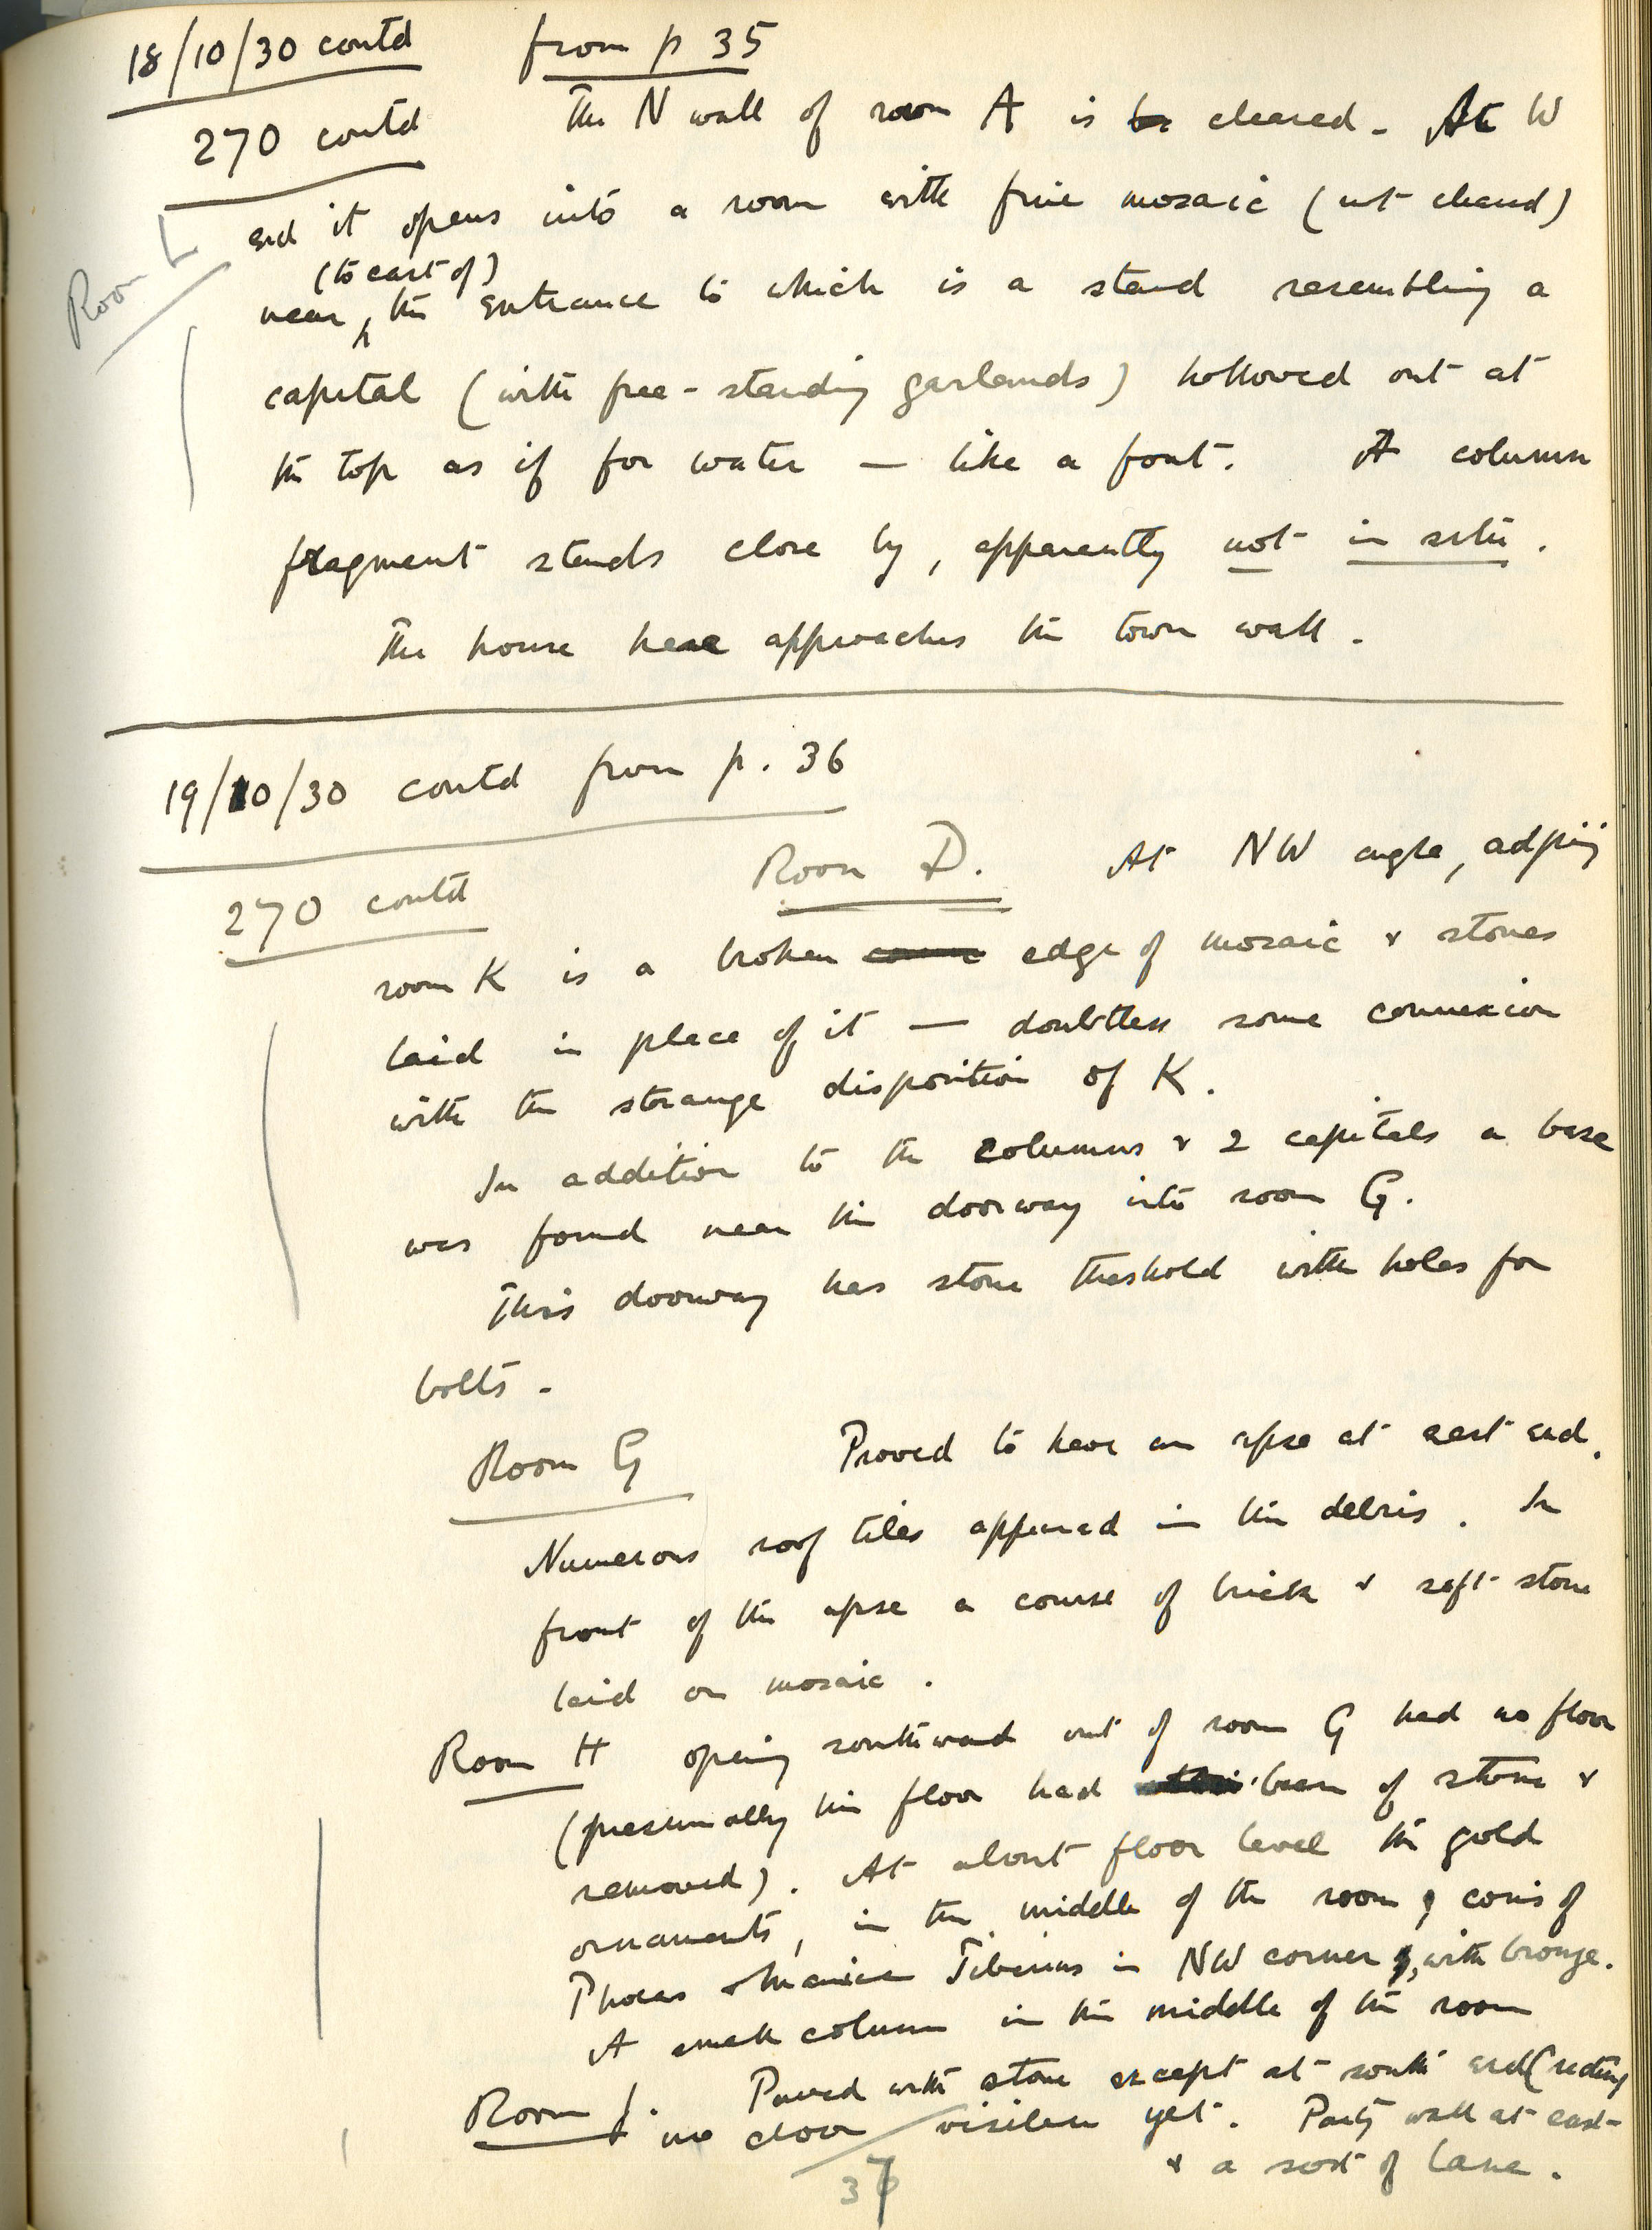 FitzGerald's Field Diary from October 19, 1930, the day the gold coin hoard was discovered in the  Our Lady Monastery .